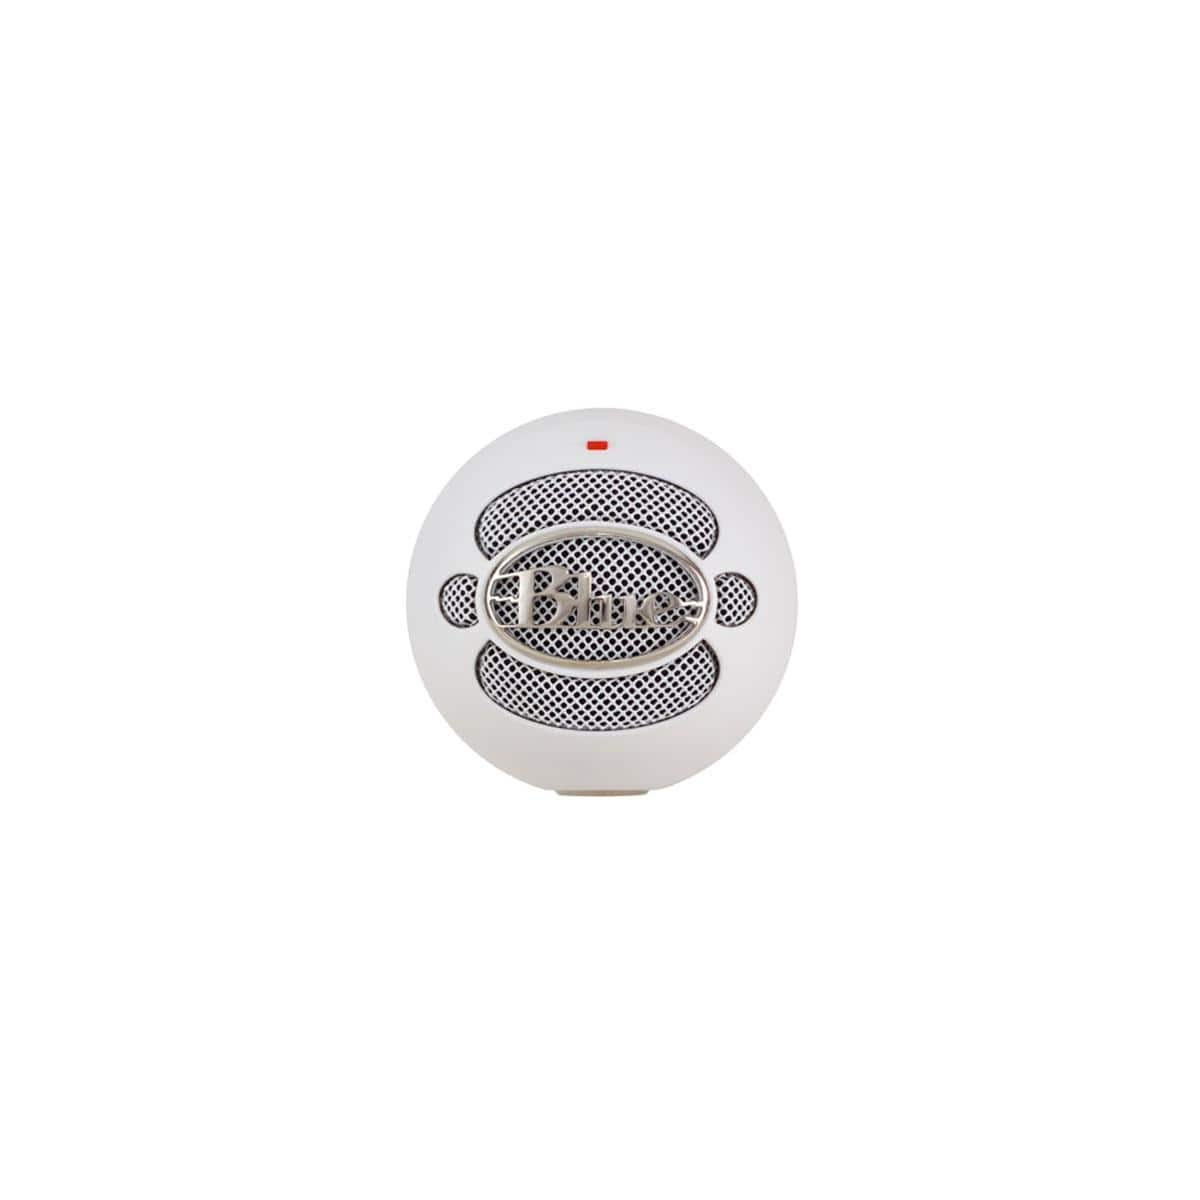 Blue Microphones Snowball USB Condenser Microphone $38 after $20 rebate + free shipping